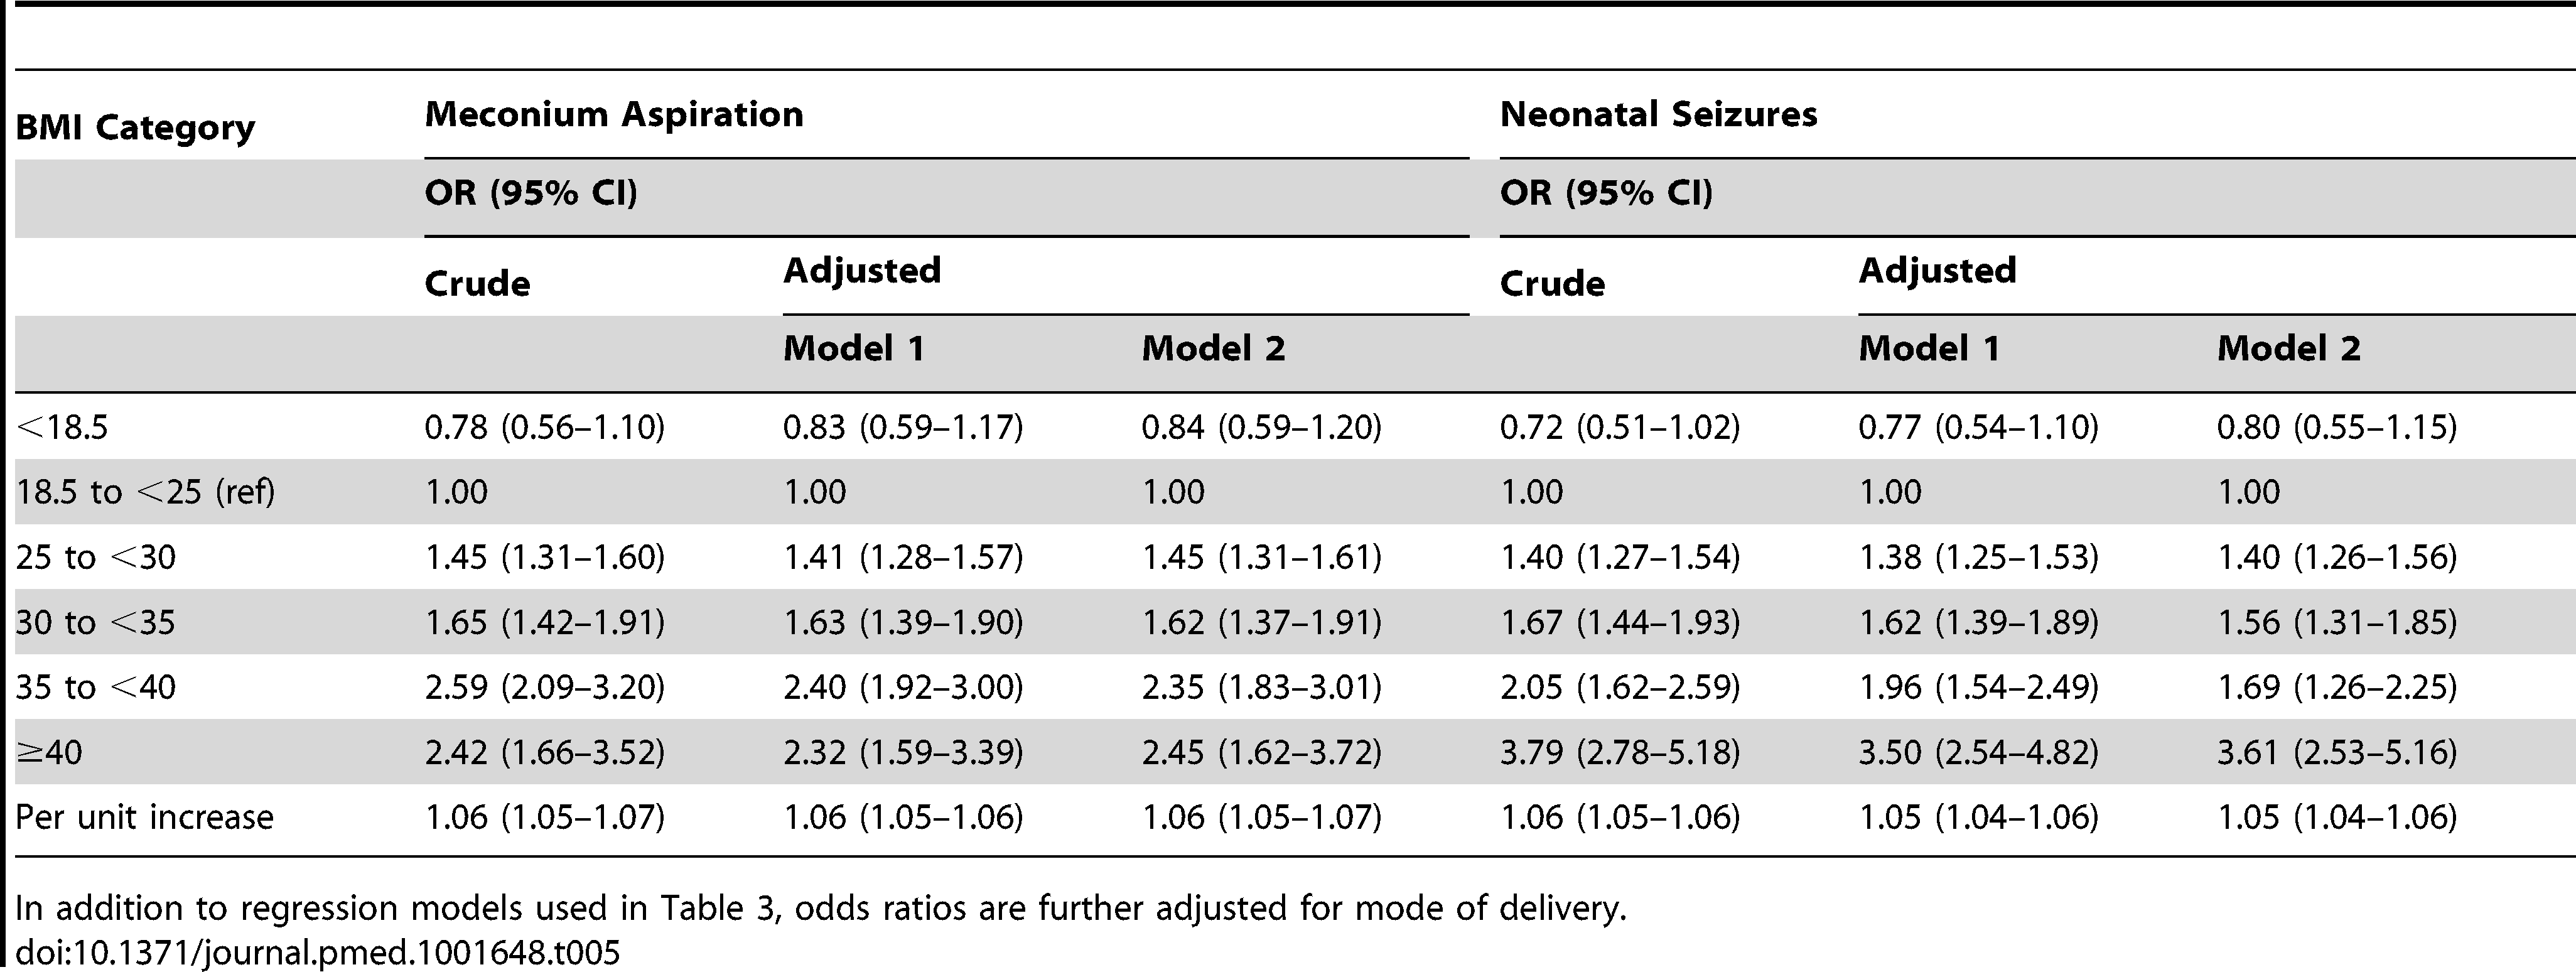 Maternal body-mass index and odds ratios for meconium aspiration and neonatal seizures; live singleton term births in Sweden 1992–2010.